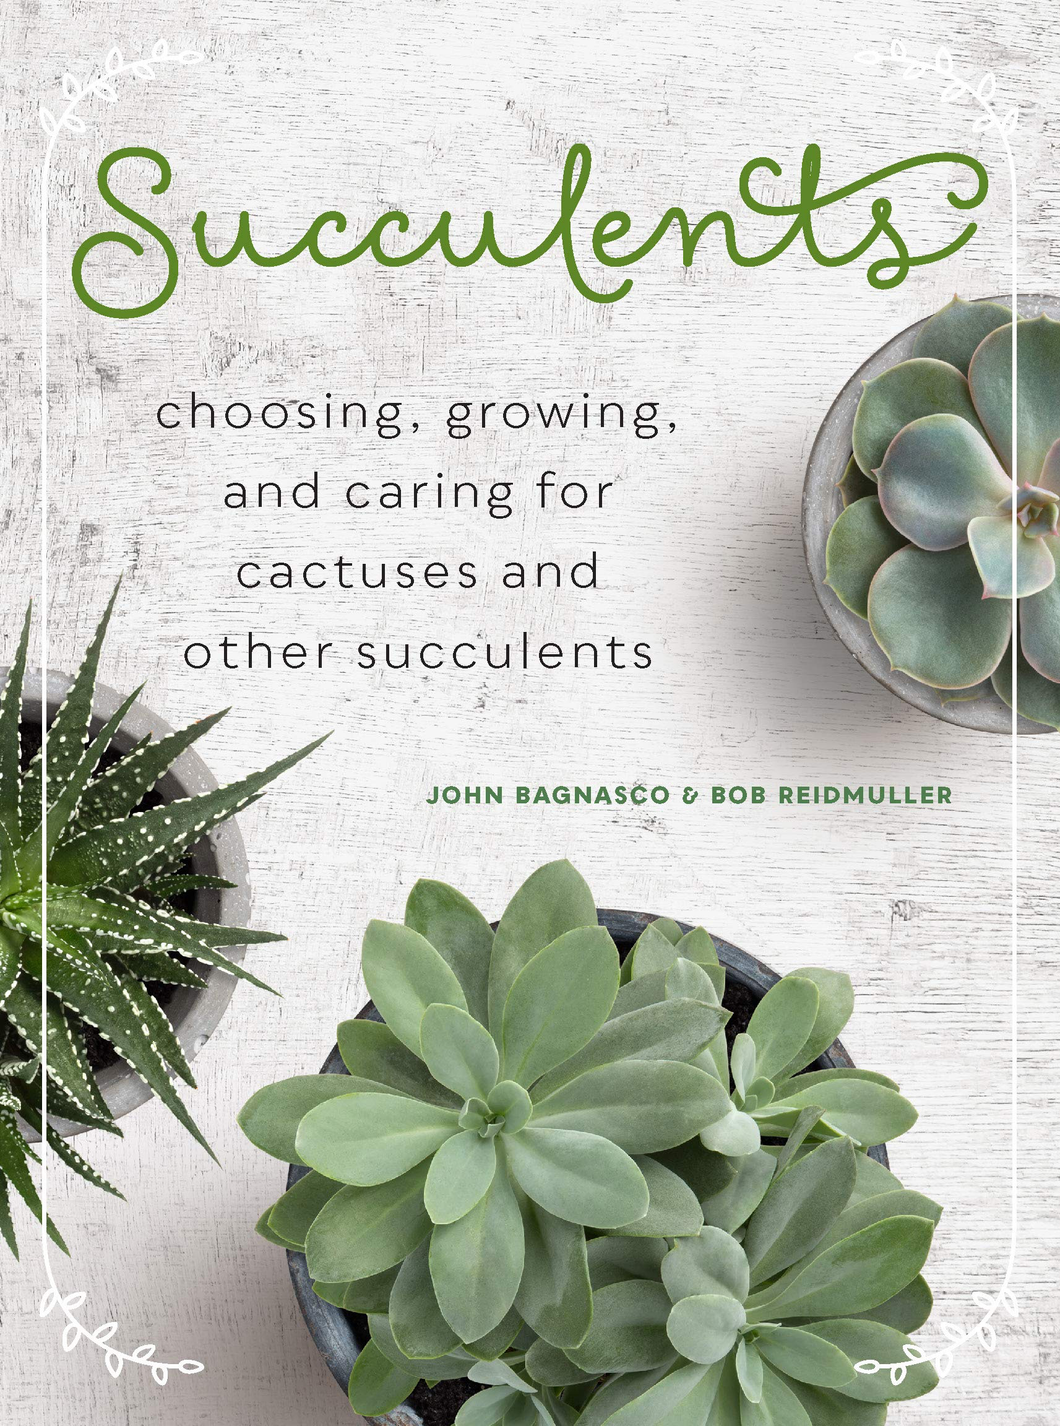 Succulents: Choosing, Growing, and Caring for Catuses and other Succulents (John Bagnasco & Bob Reidmuller)